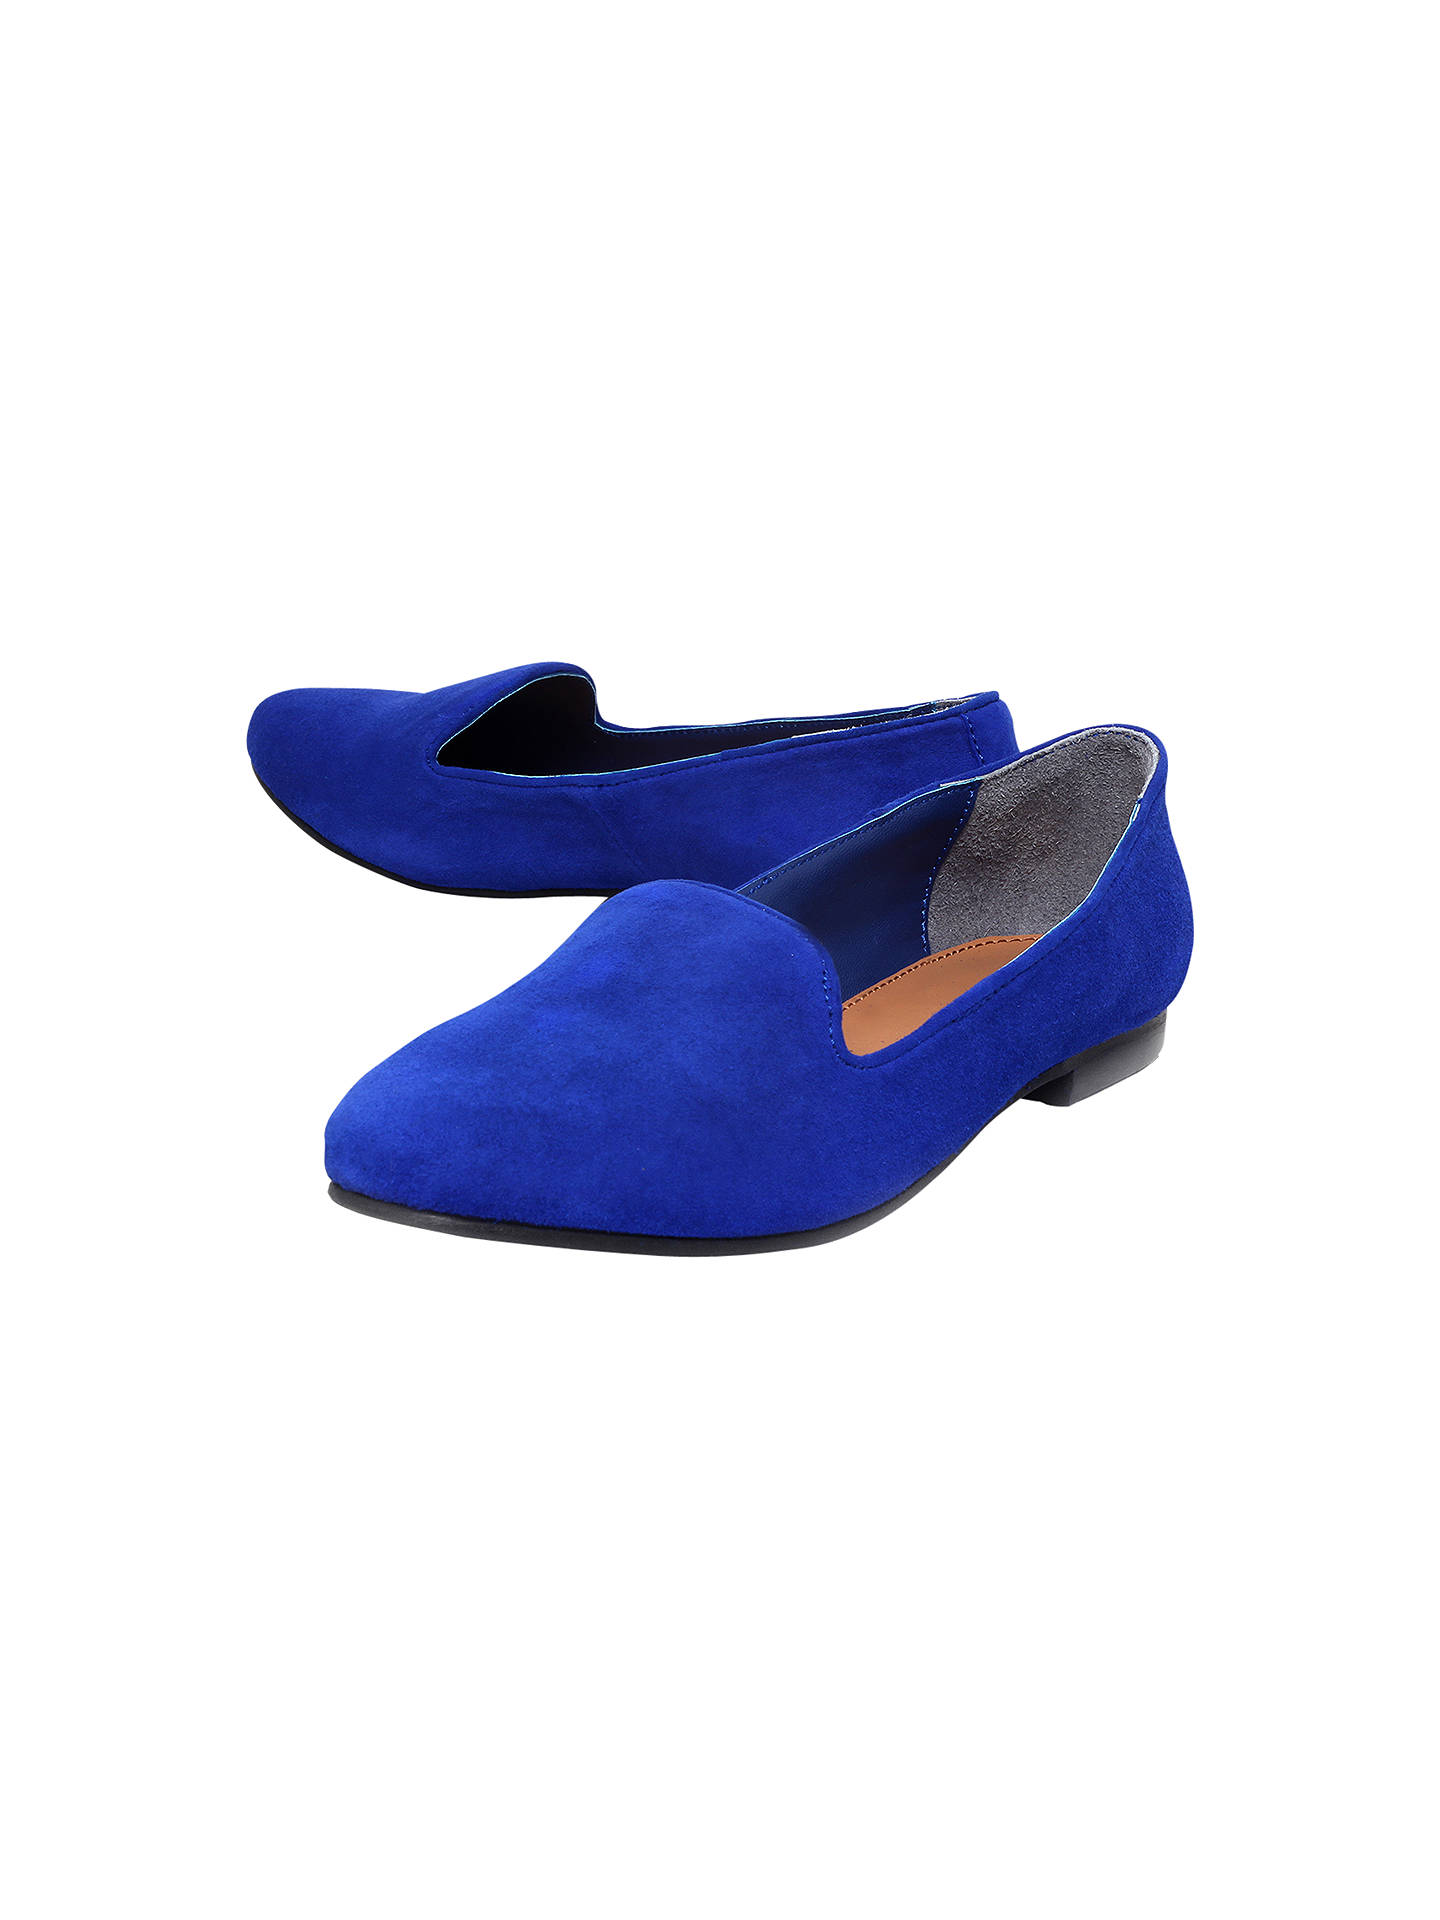 7ba7415a652af ... Buy Miss KG Nieve Slipper Shoes, Cobalt, 3 Online at johnlewis.com ...